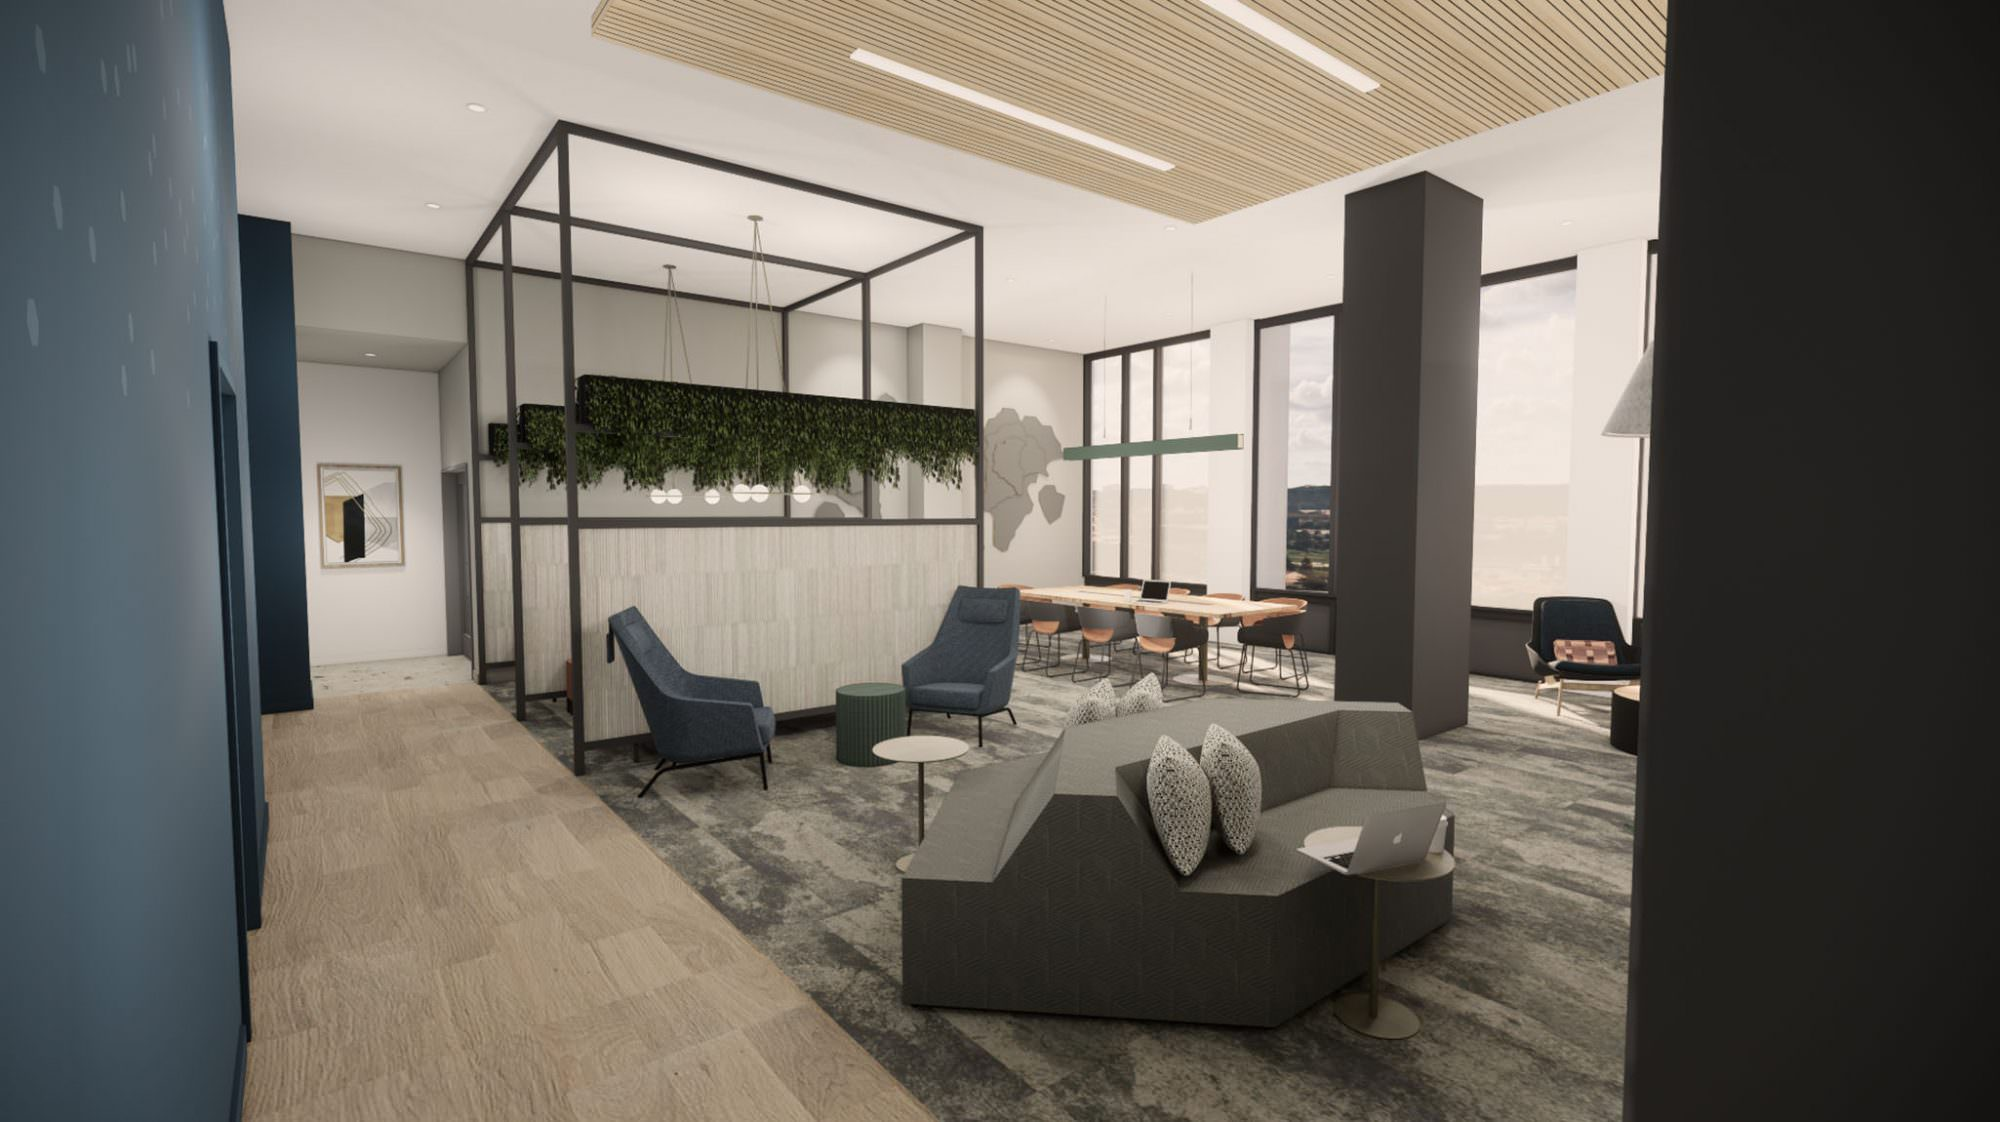 Lakeview Student Apartments Interior Design